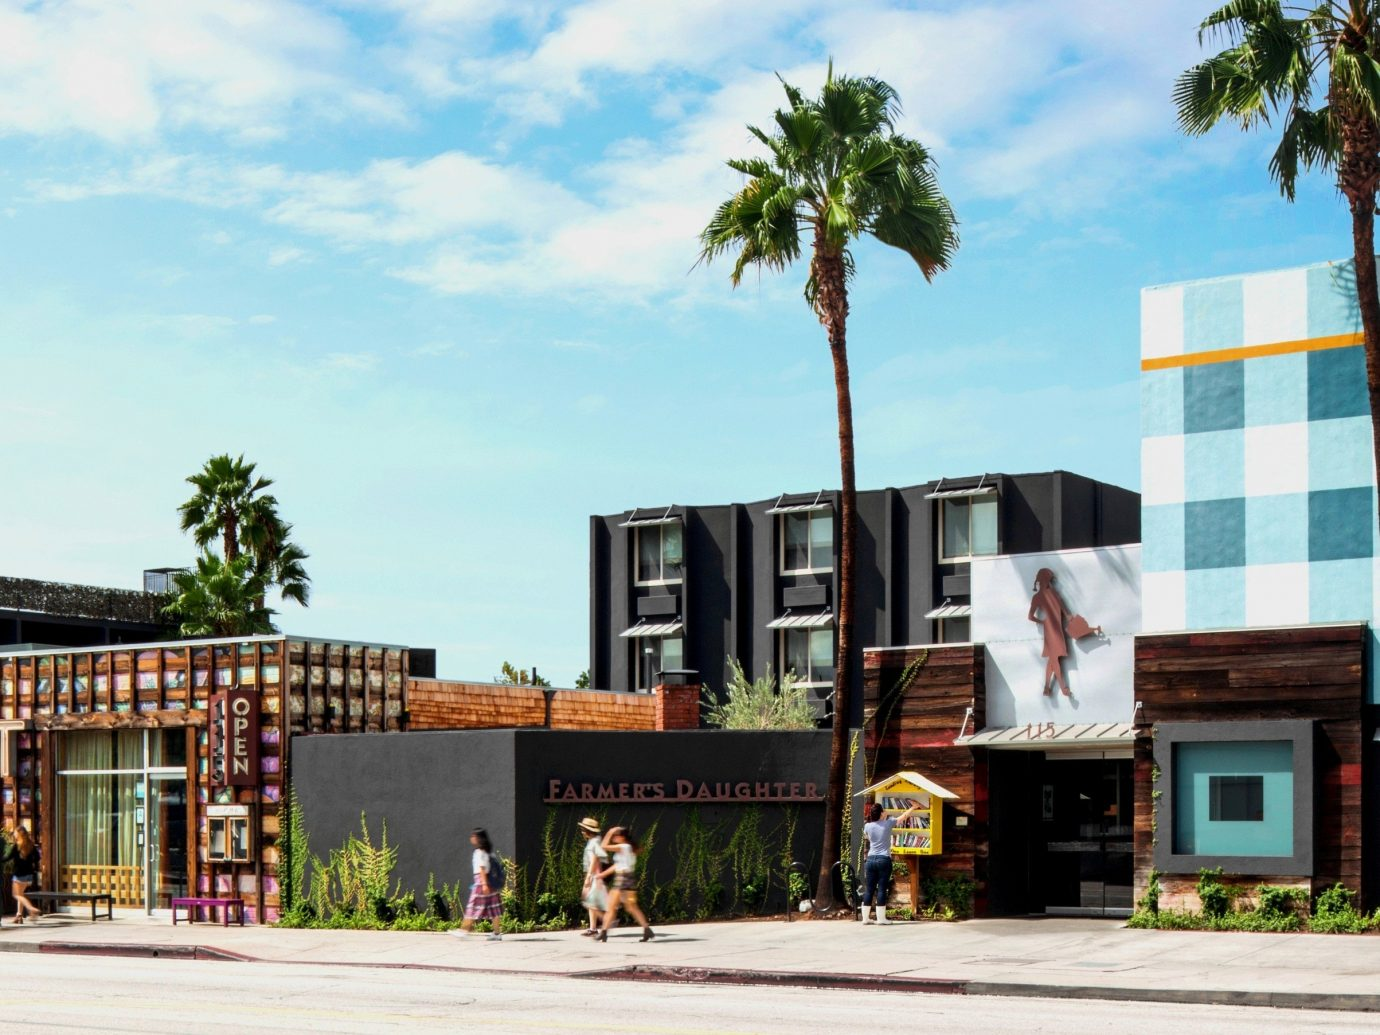 Hotels Style + Design Trip Ideas outdoor sky building tree road mixed use neighbourhood Architecture residential area palm tree real estate arecales home City Downtown facade house condominium commercial building palm plant past